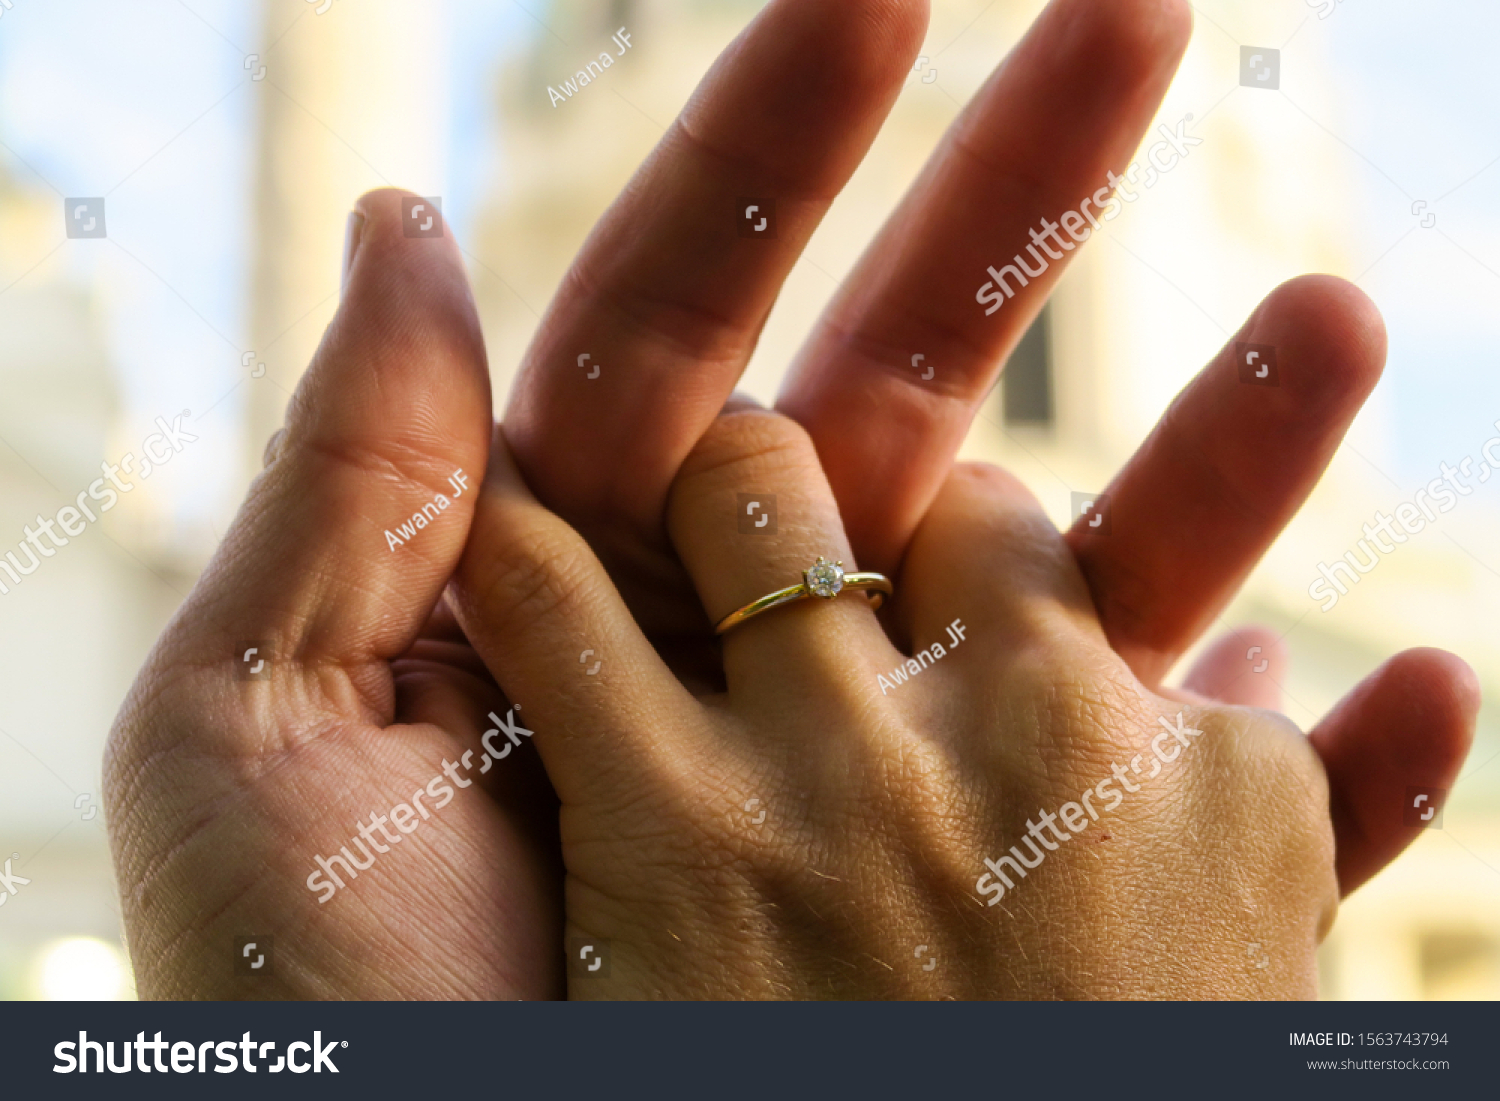 stock-photo-closeup-of-lovers-hands-with